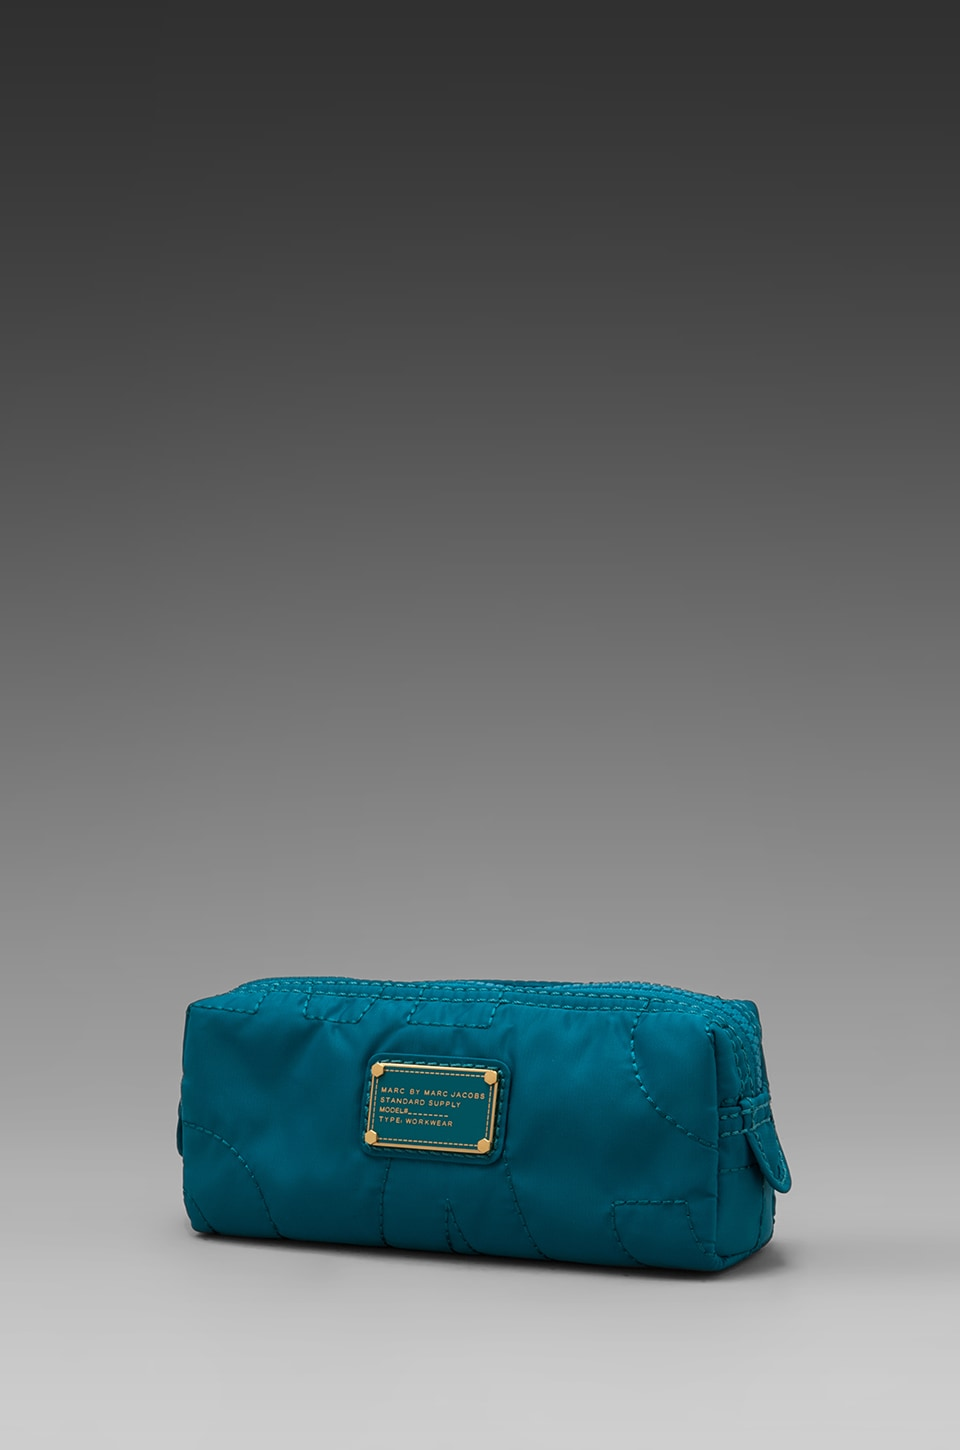 Marc by Marc Jacobs Pretty Nylon Narrow Cosmetic Bag in Deep Teal